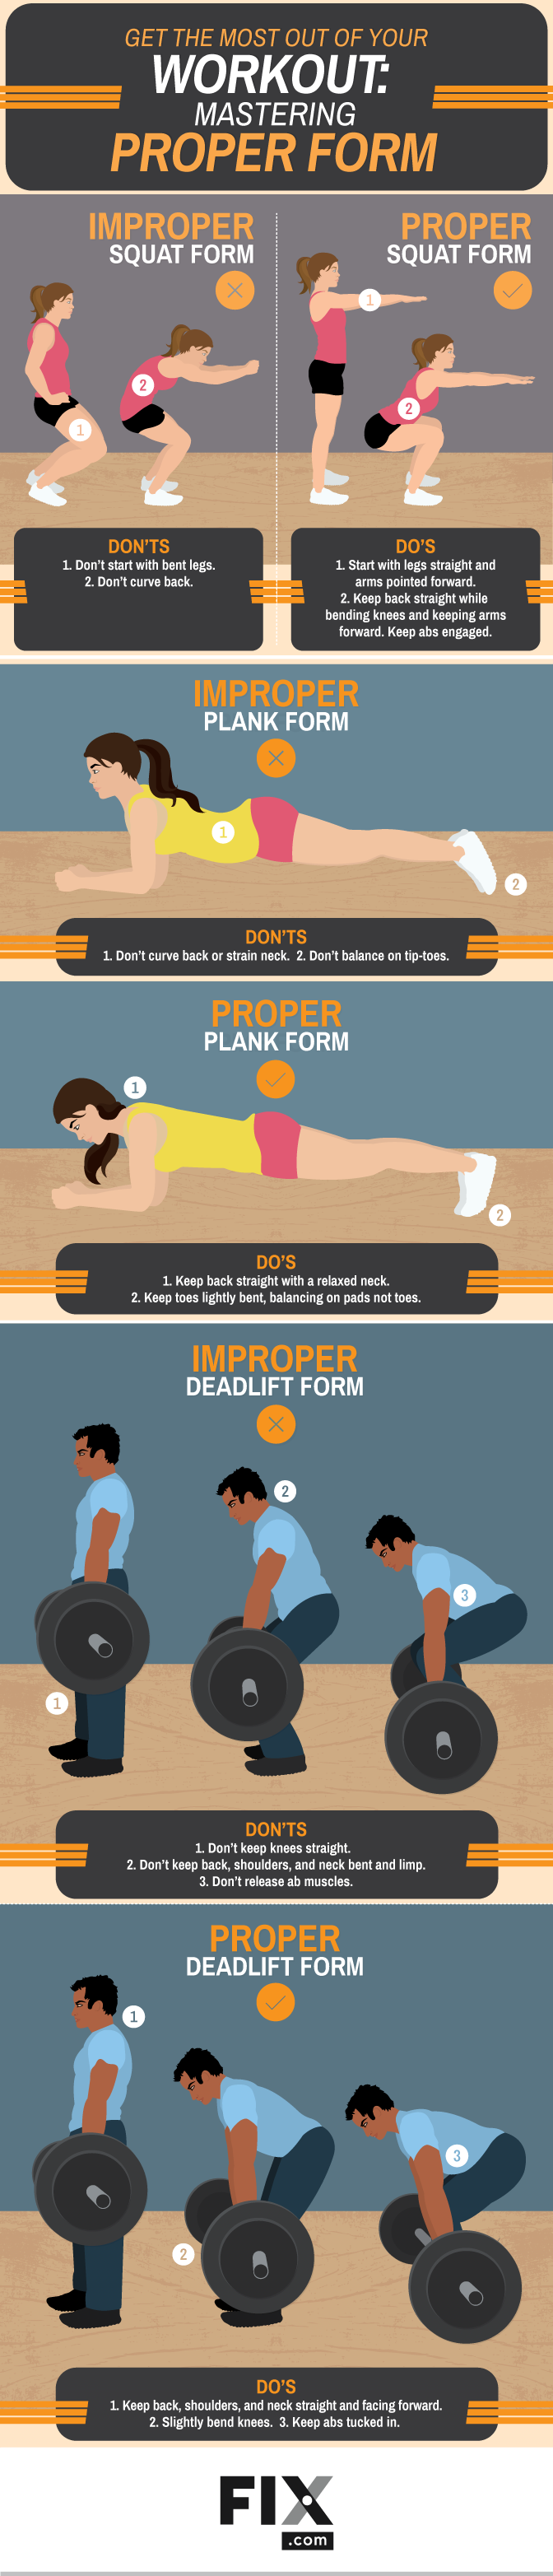 GET THE MOST OUT OF YOUR MASTER PROPER WORKOUT FORM #INFOGRAPHIC